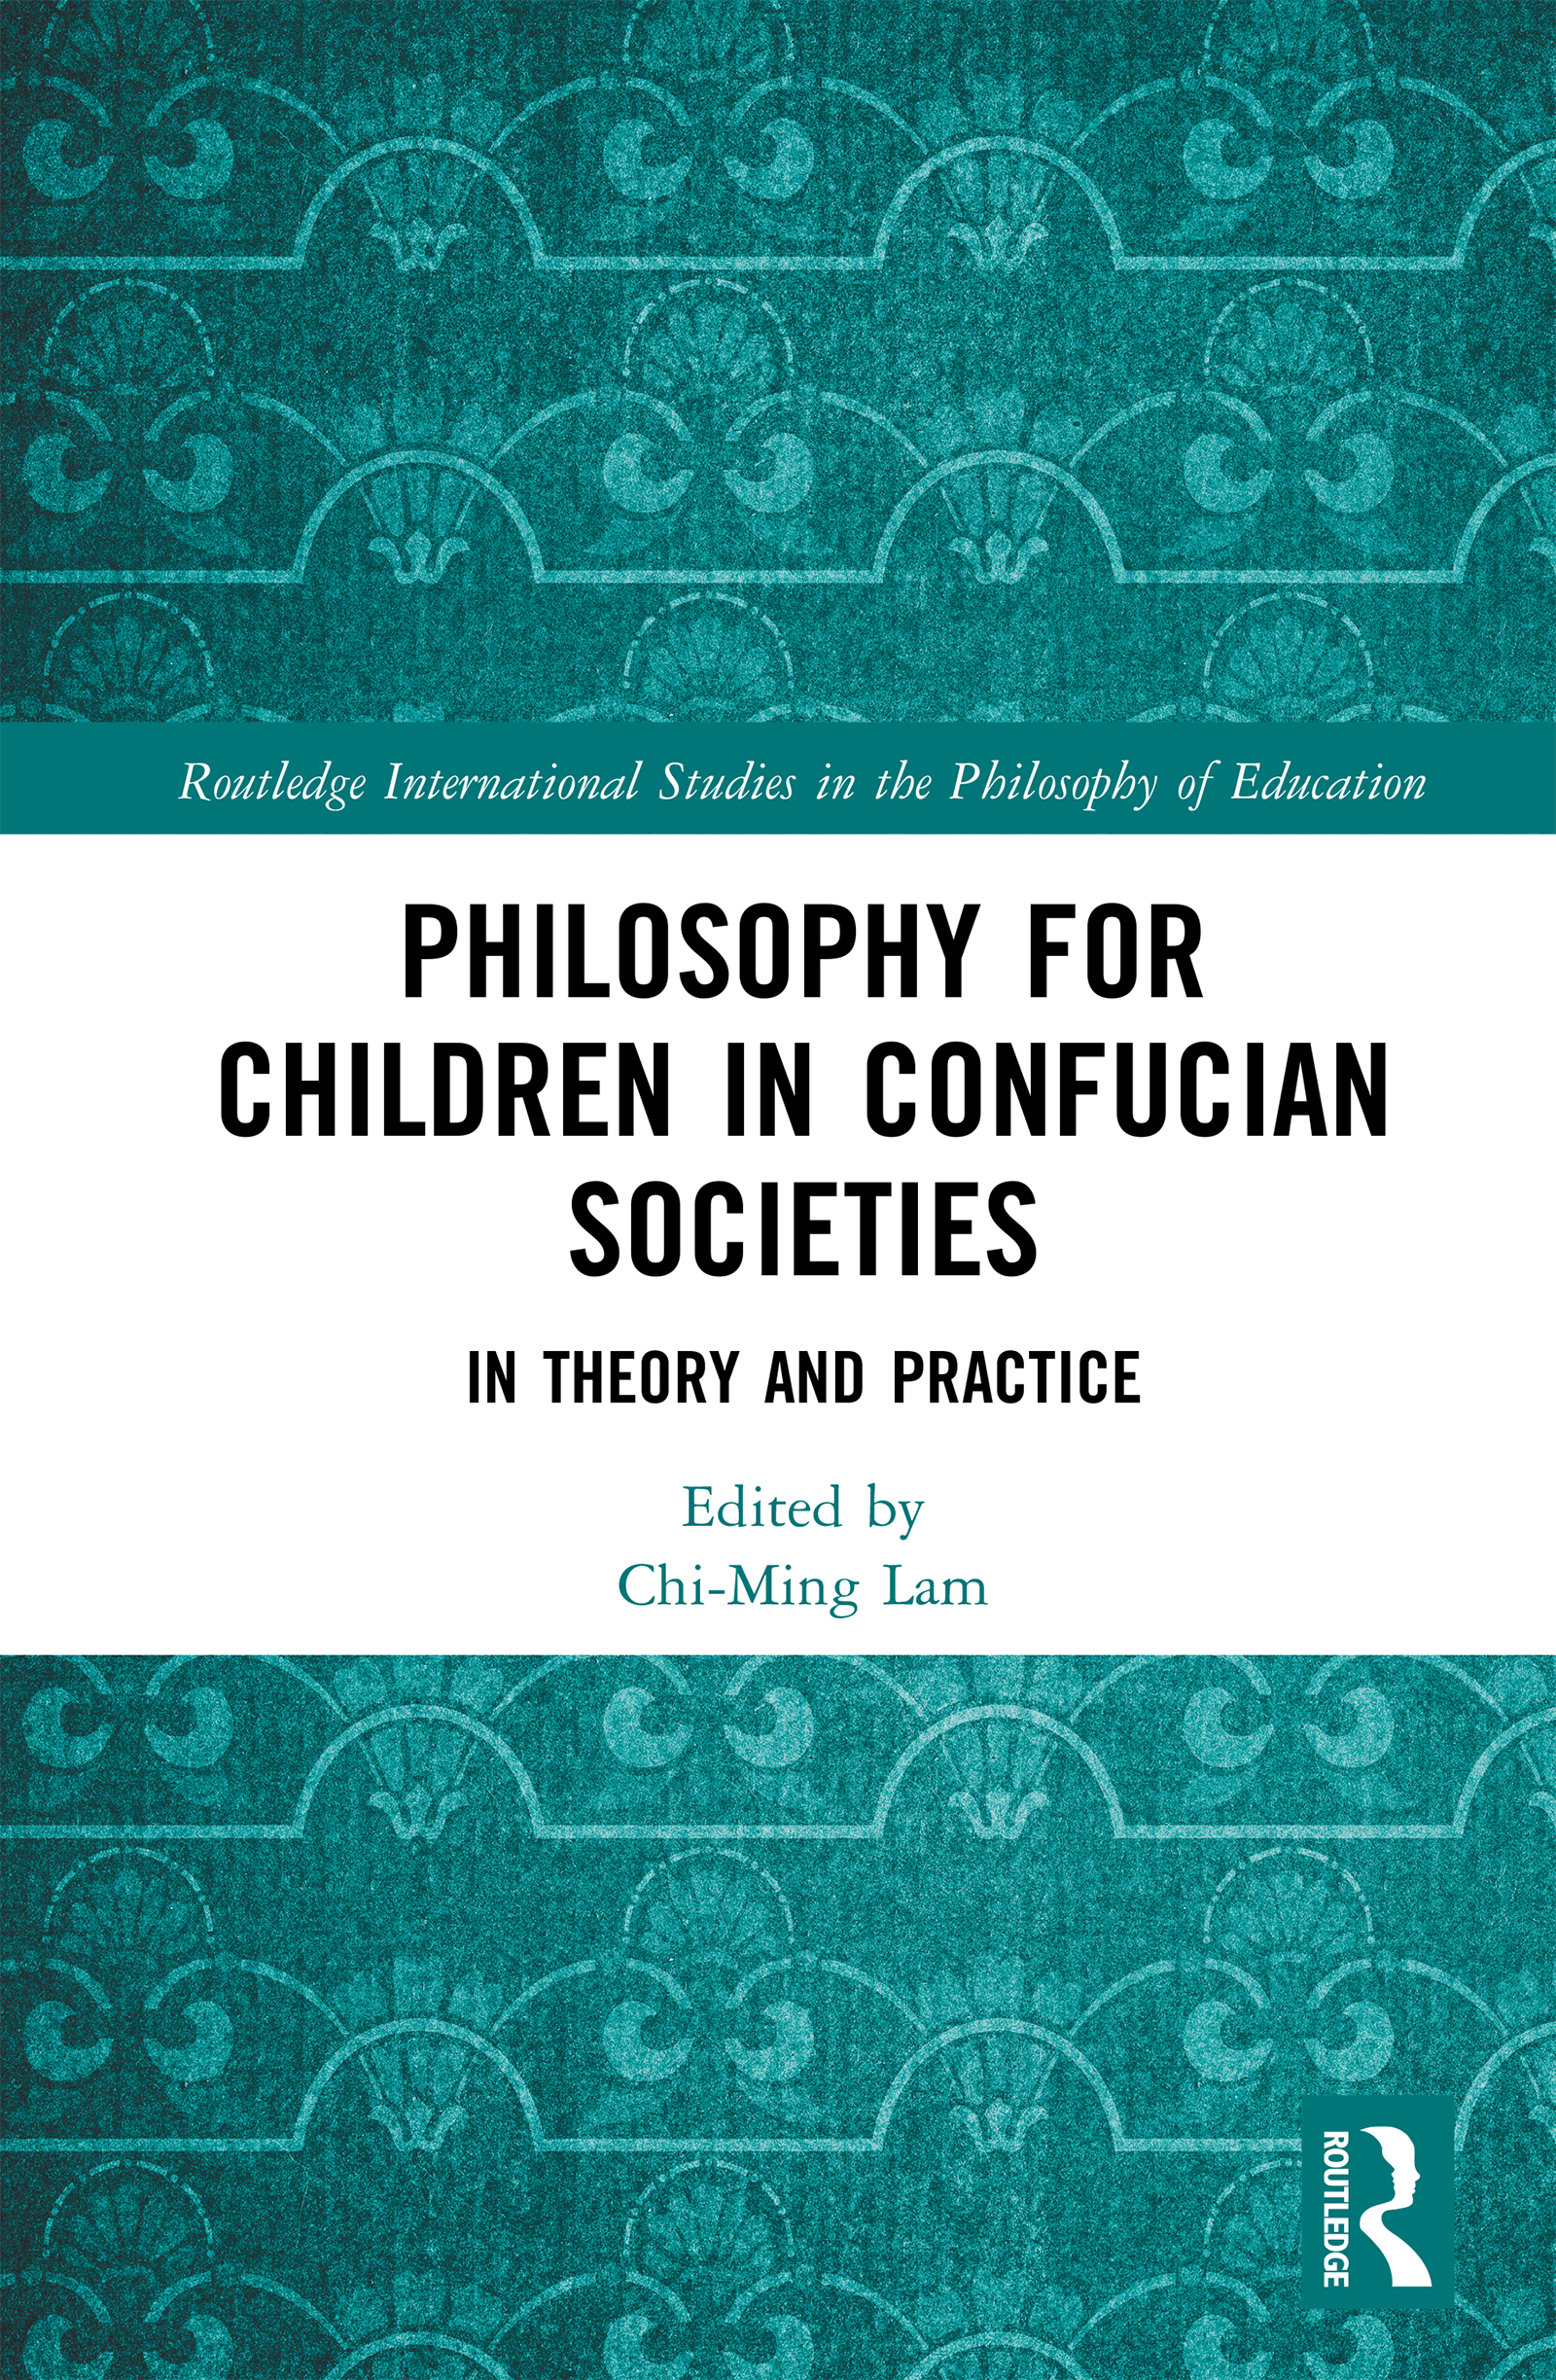 Philosophy for Children in Confucian Societies: In Theory and Practice book cover